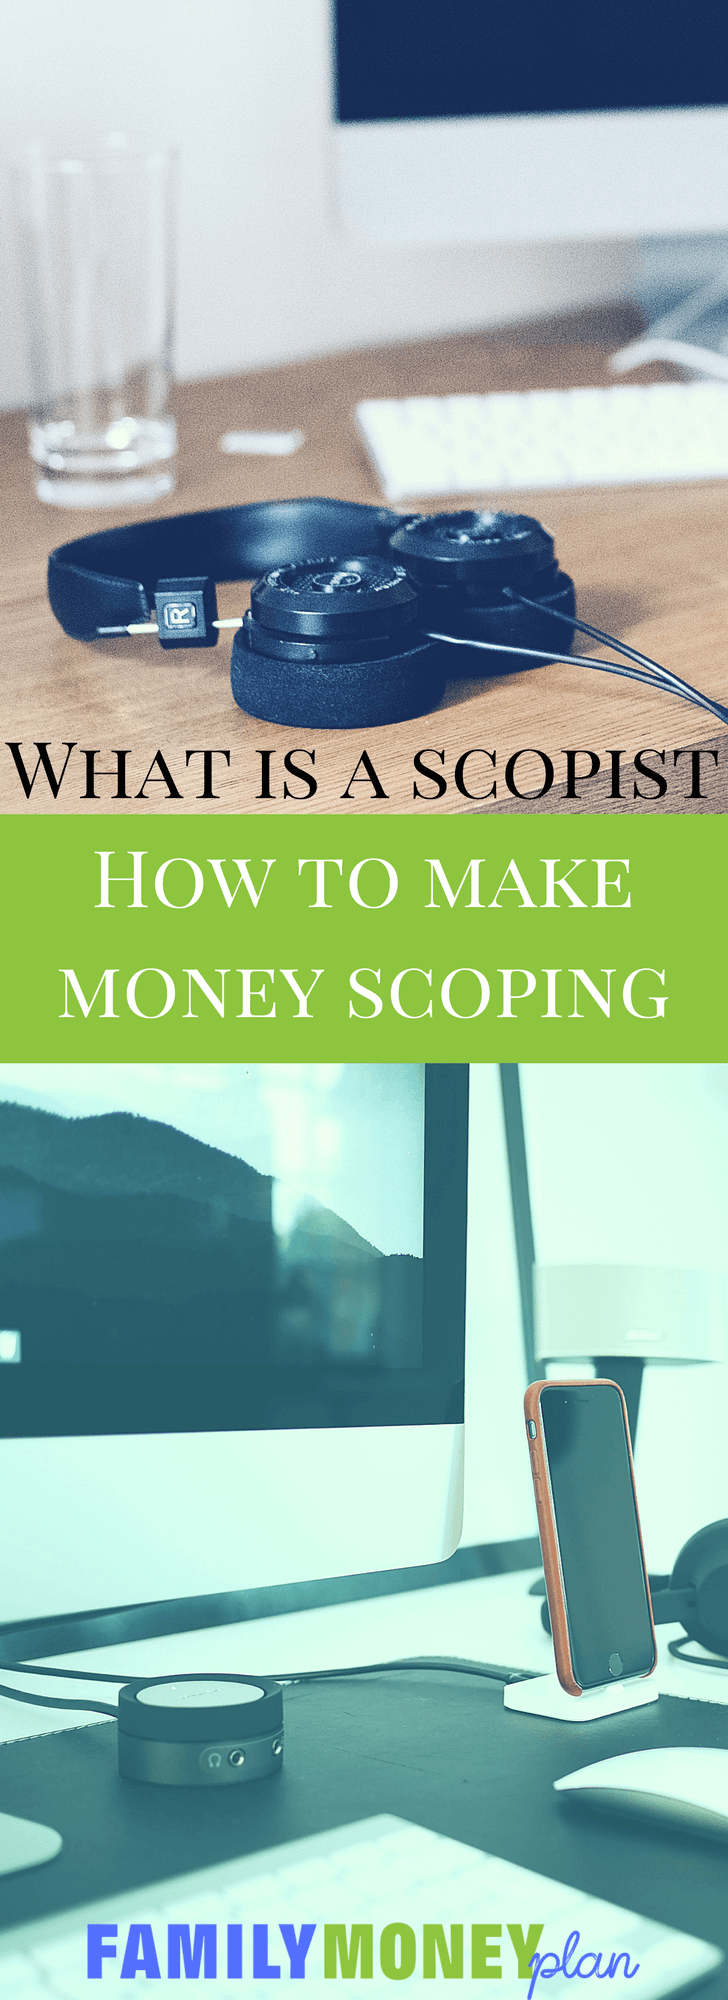 How to Make Money as a Scopist | Work at Home | Work for People Who Love Words | Making Money | What is a scopist? |